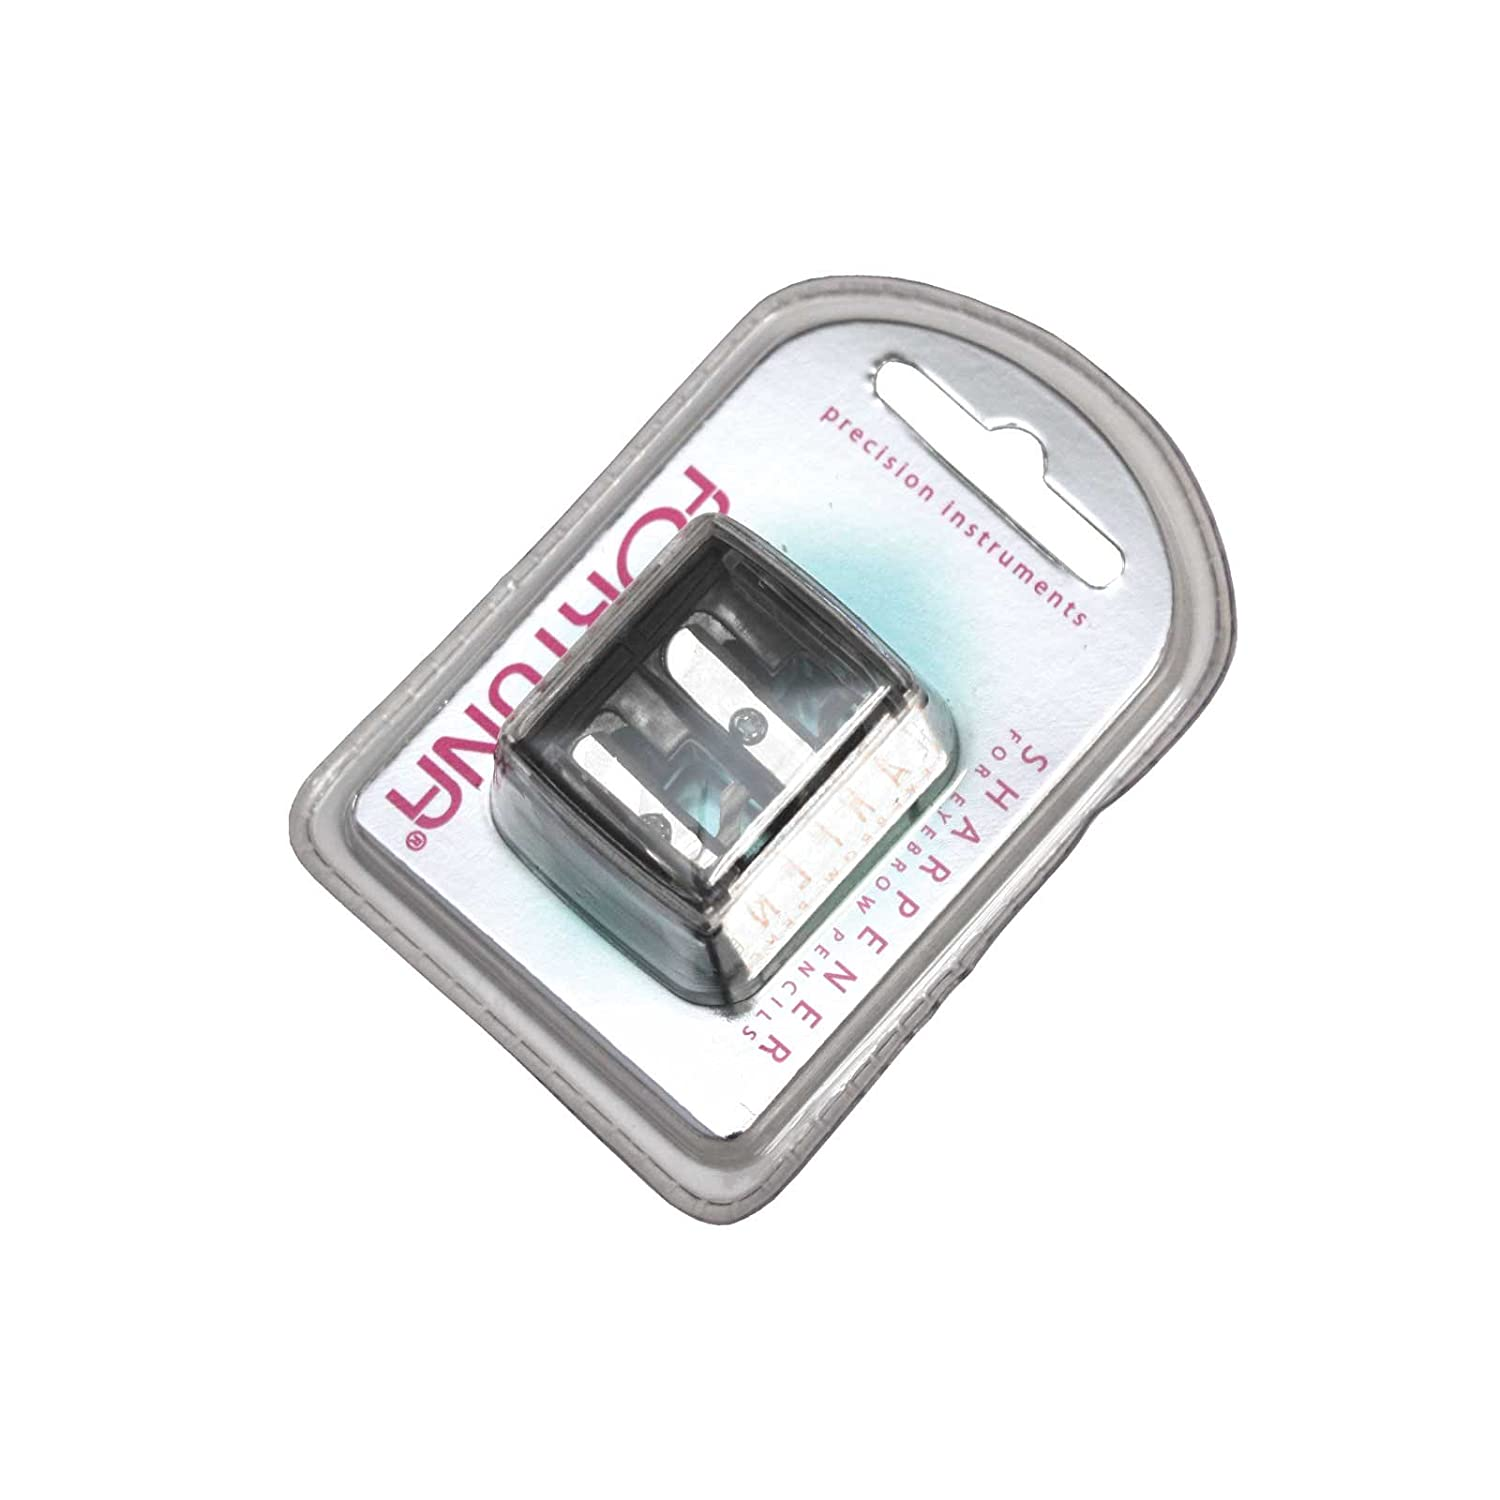 Fortuna sharpener for cosmetic pencils